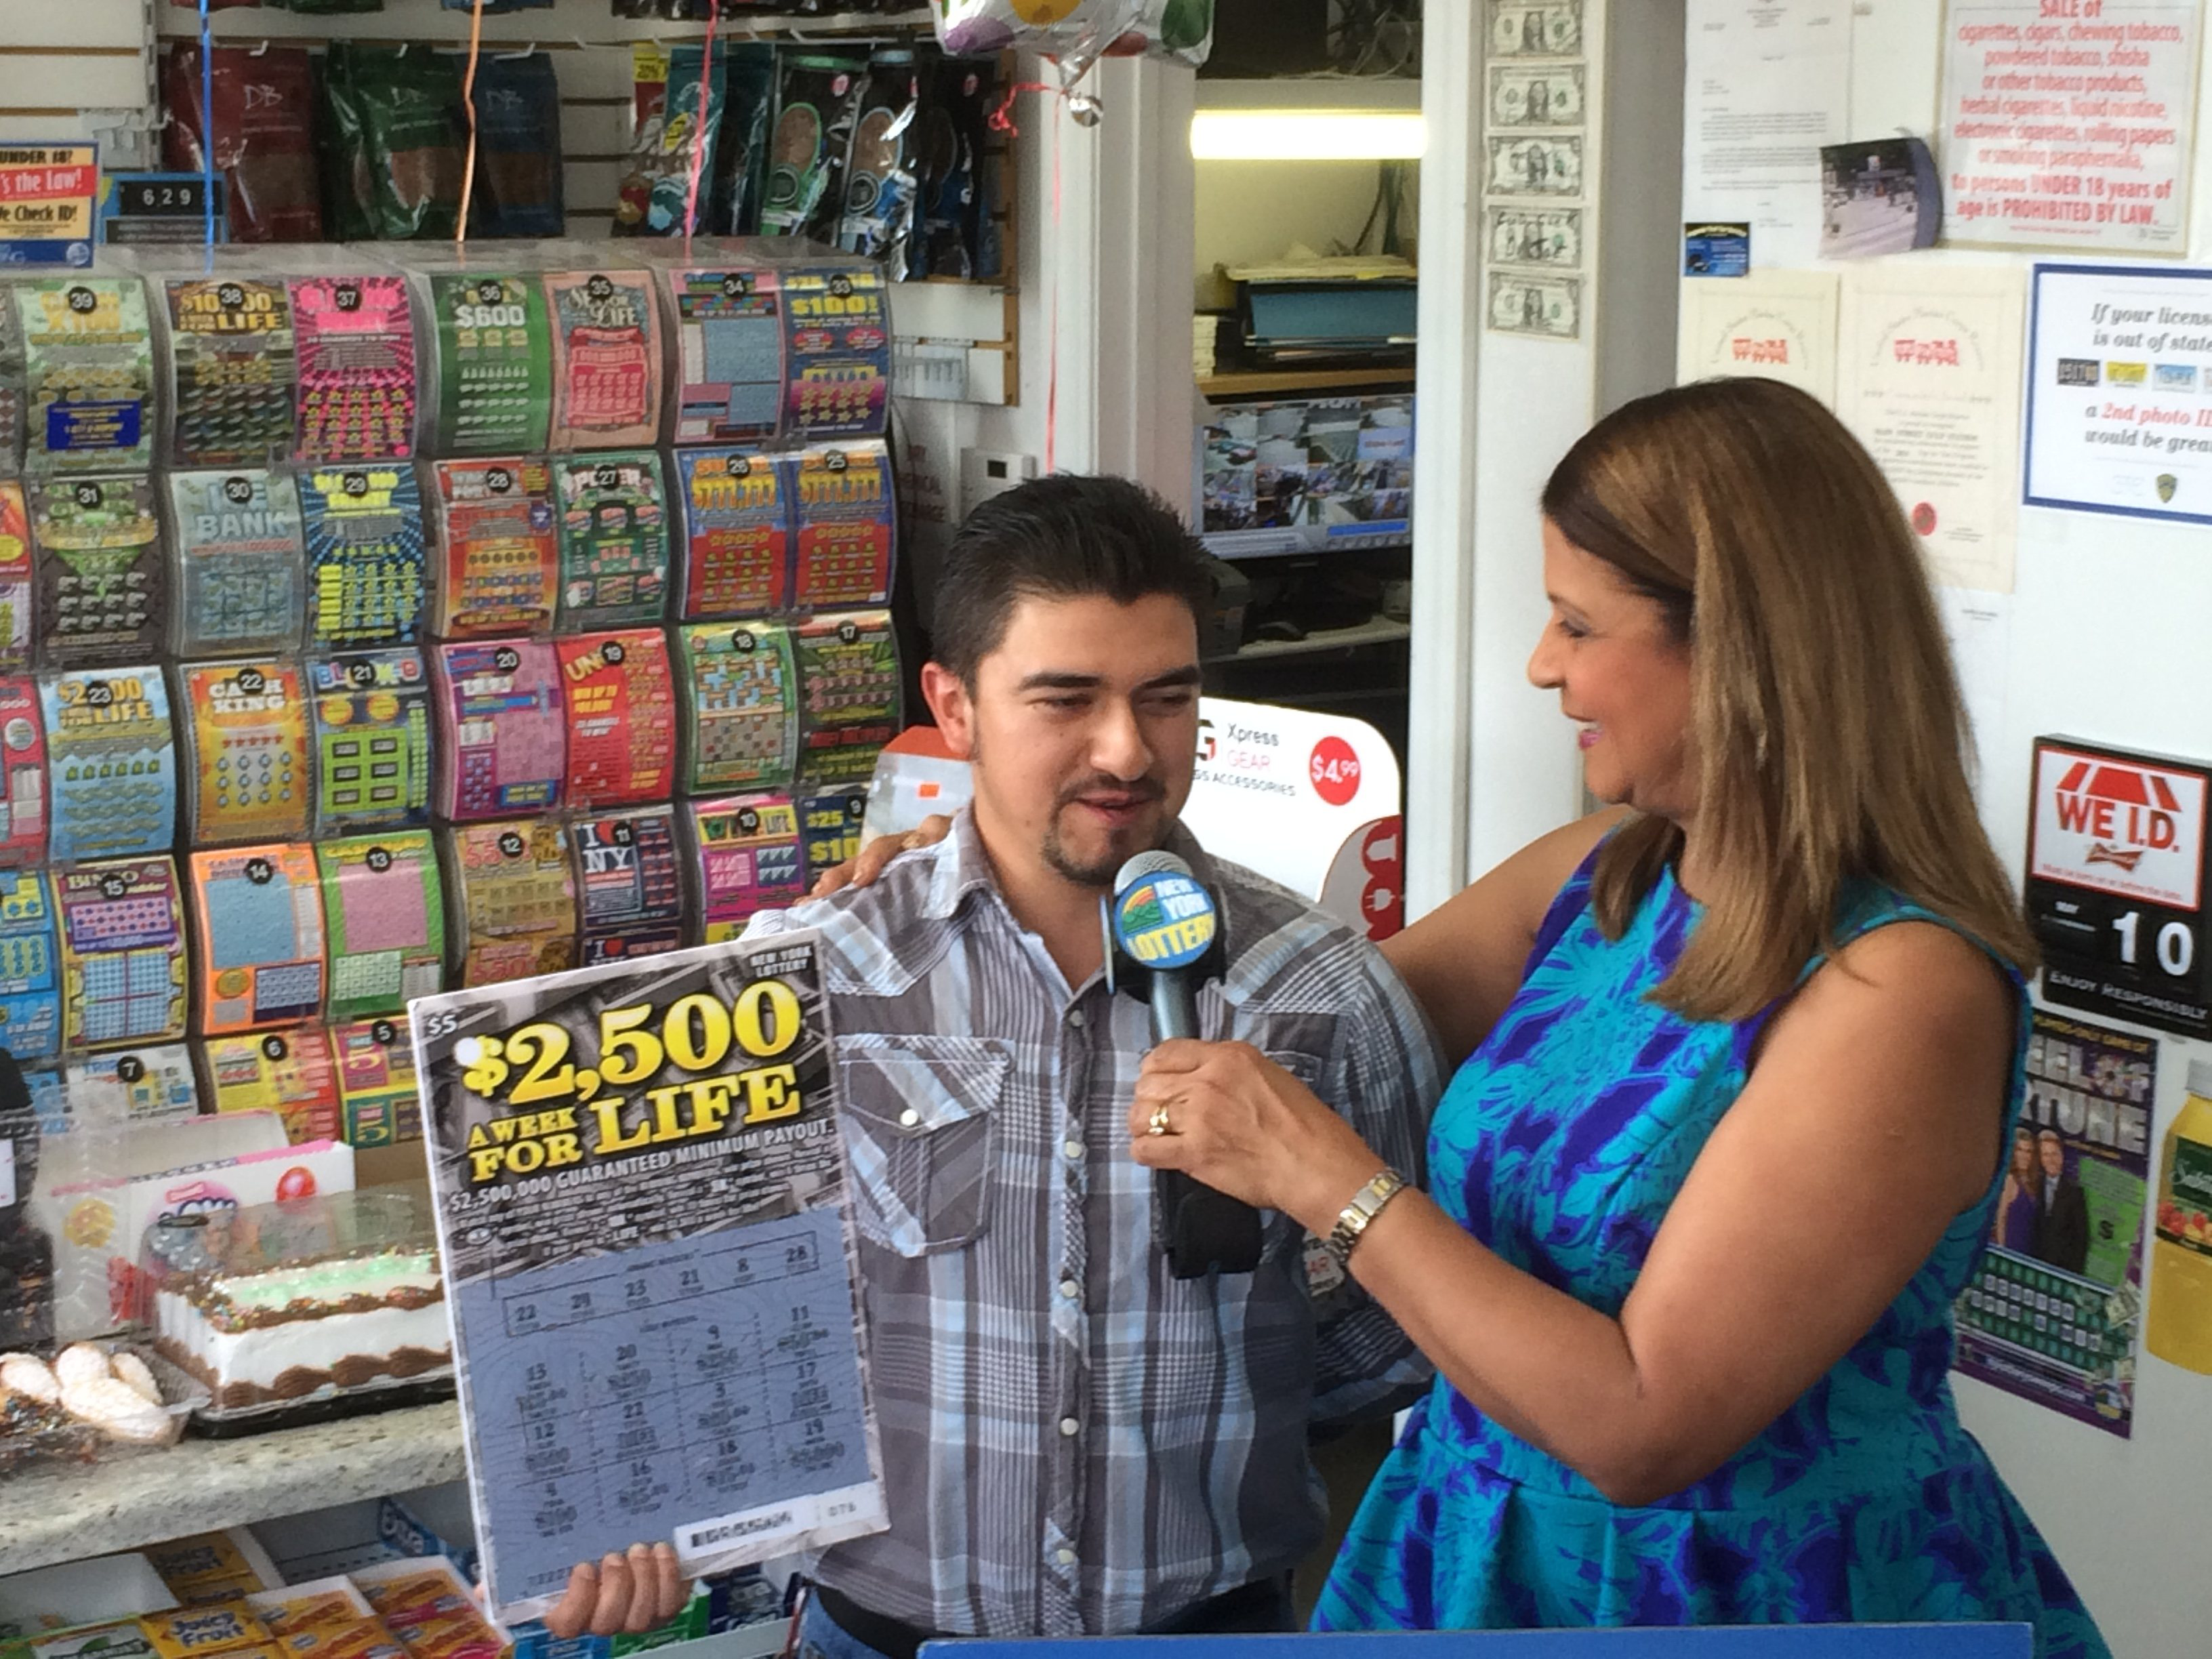 Young Landscaper Wins Over A Million Dollars In New York Lottery